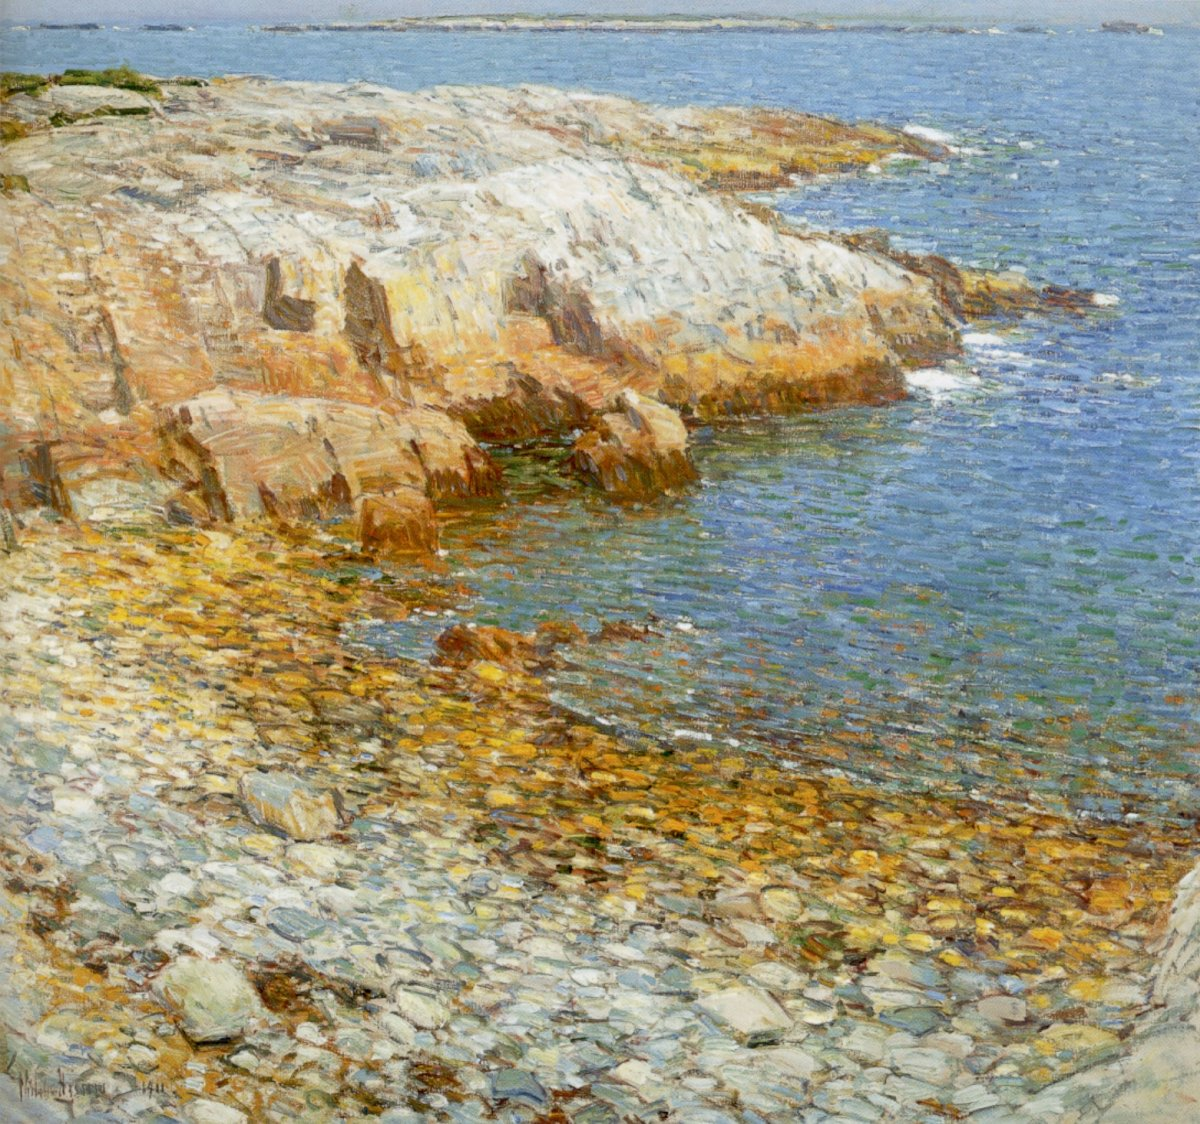 'Isles of Shoals, Broad Cove'  (1911) oil on canvas painting by Childe Hassam